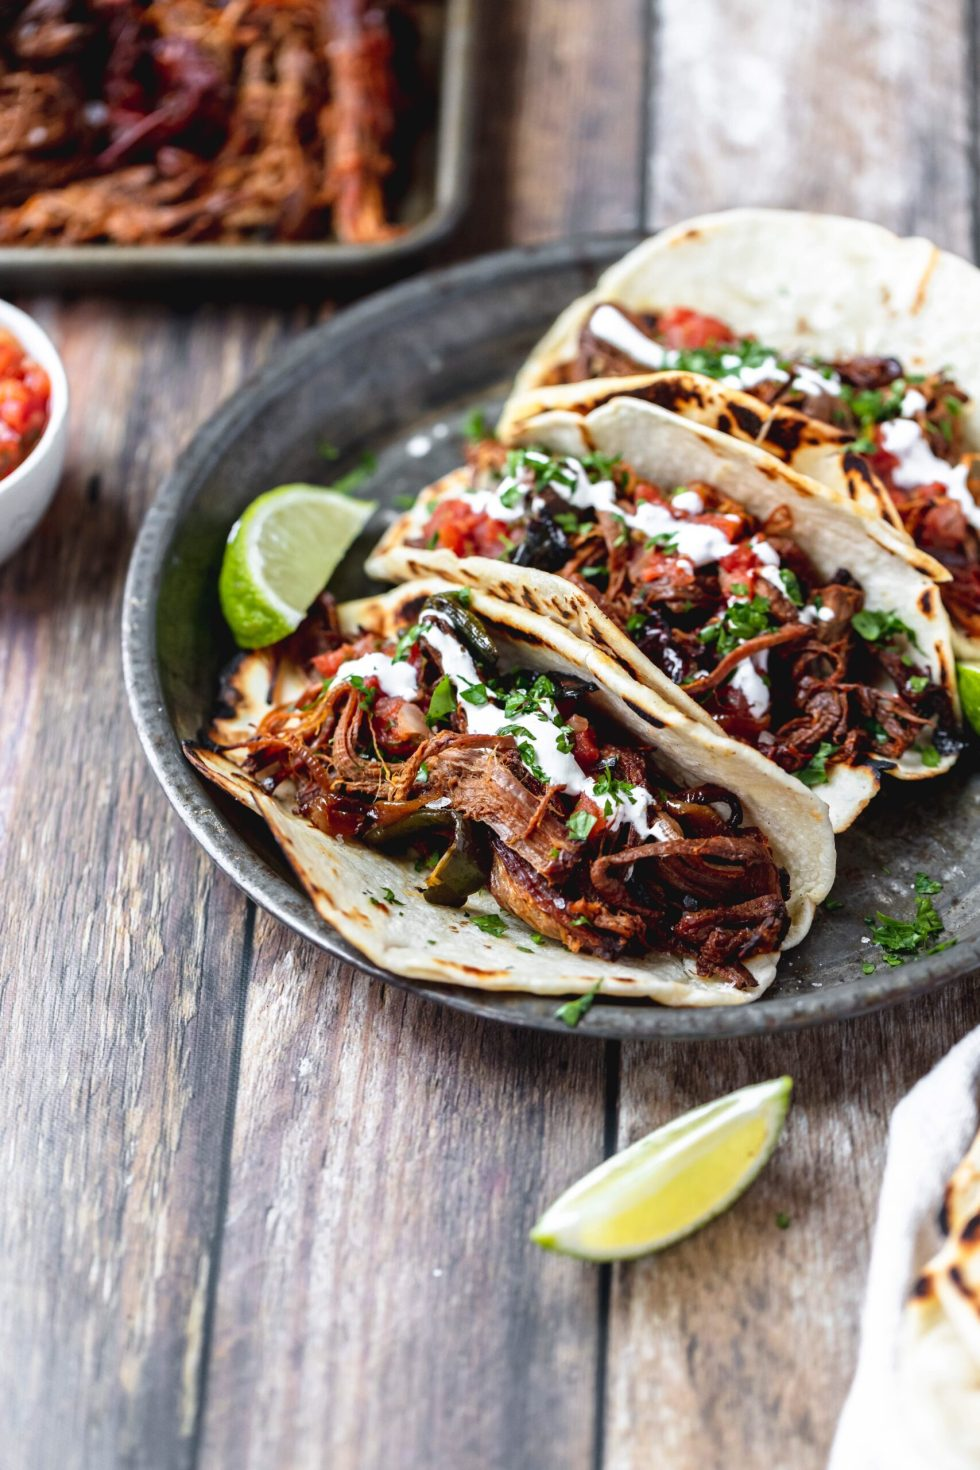 beef tacos with salsa and sour cream on top